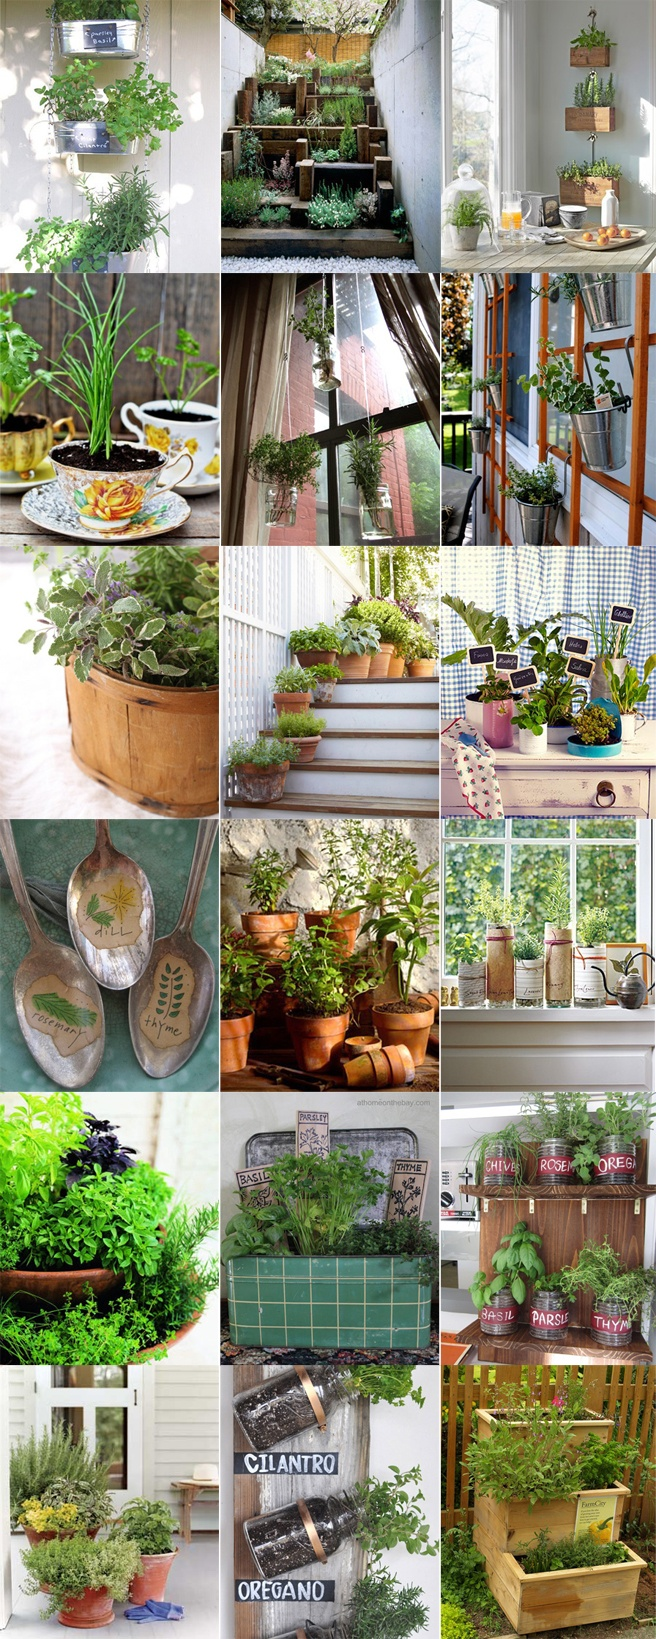 A Herbs Garden At Home | Horta De Ervas Caseira Part 76